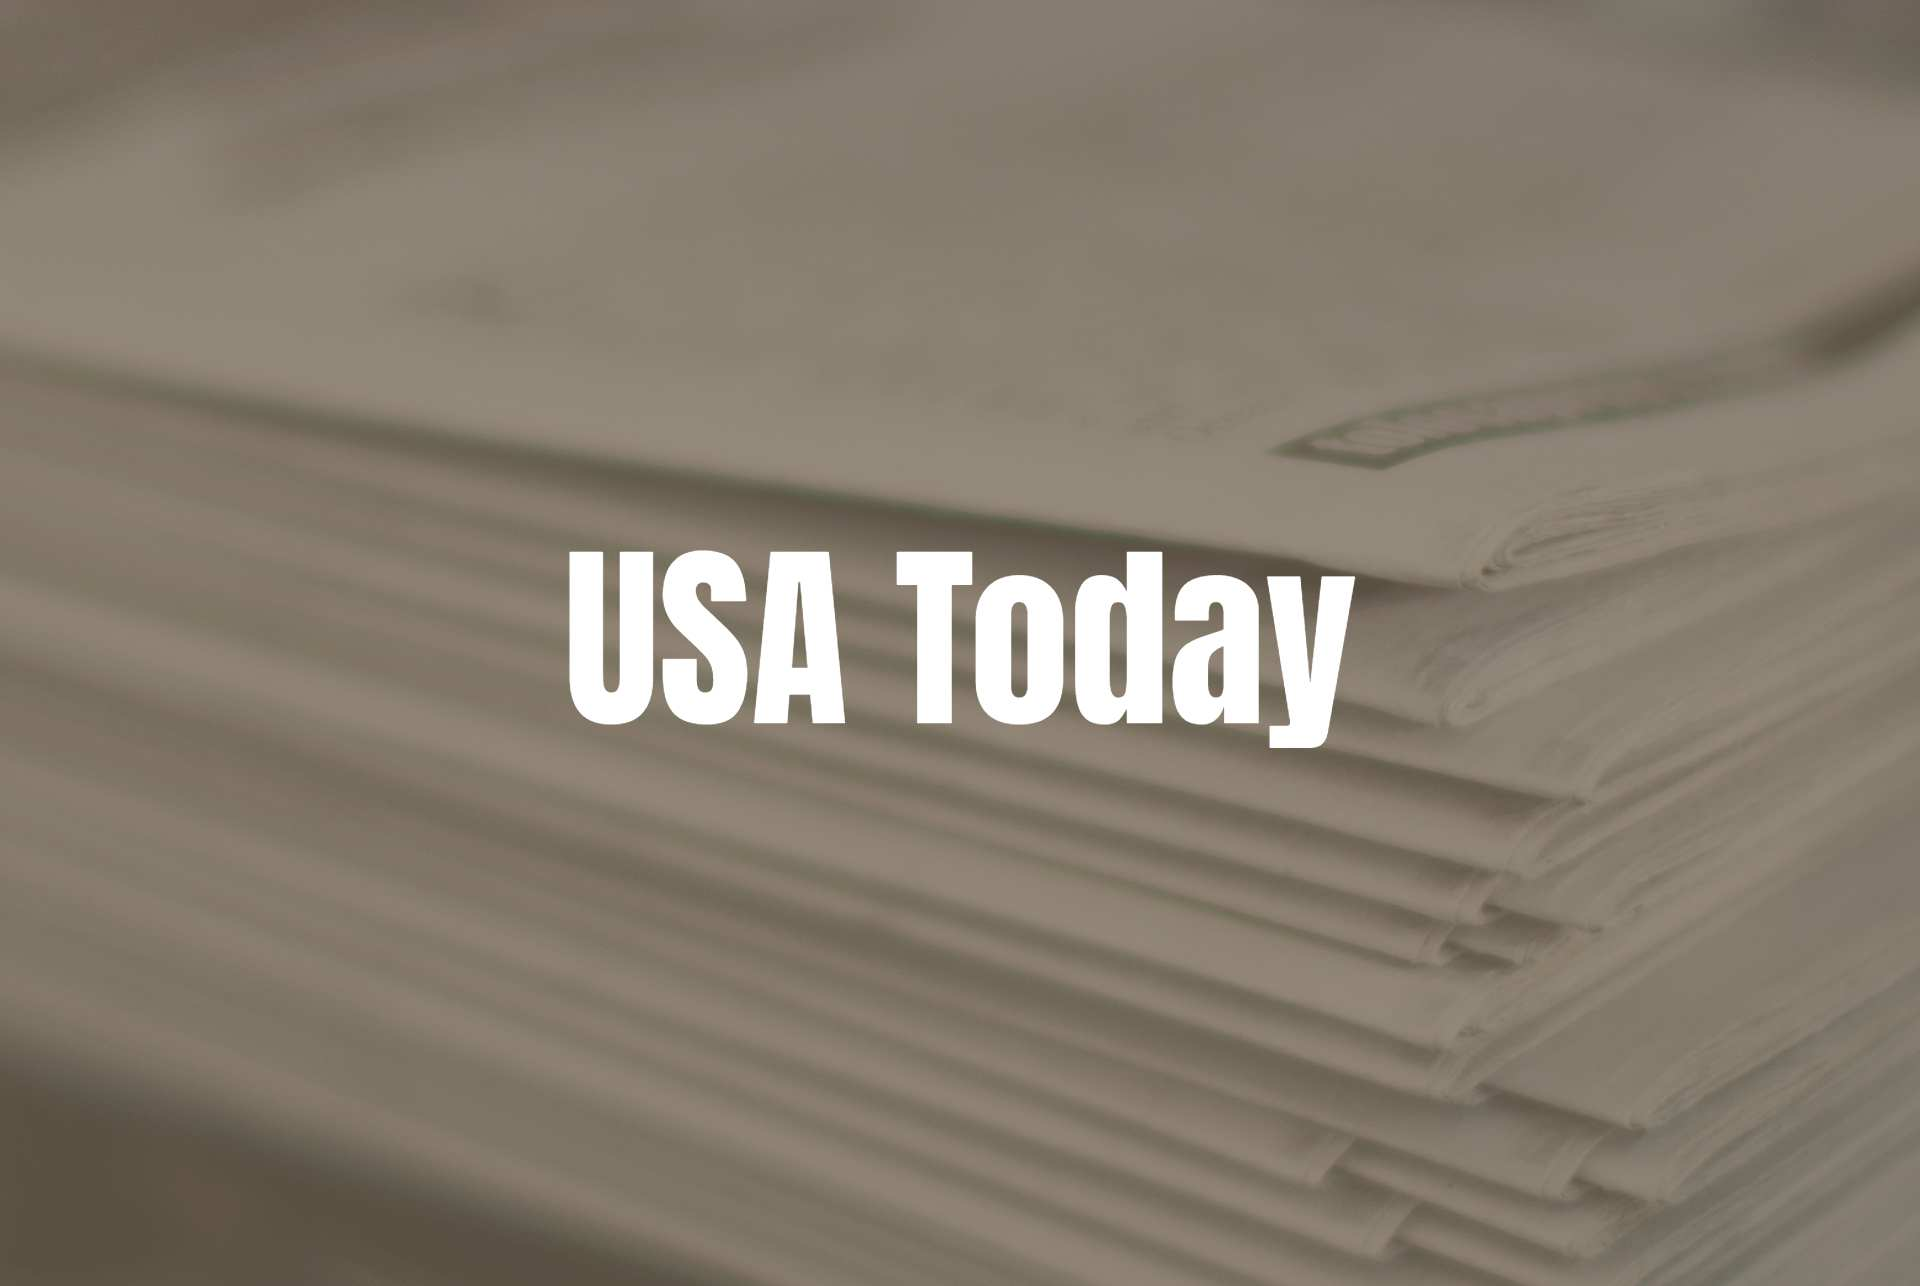 USA Today Cover Photo text on an old time newspaper stack background